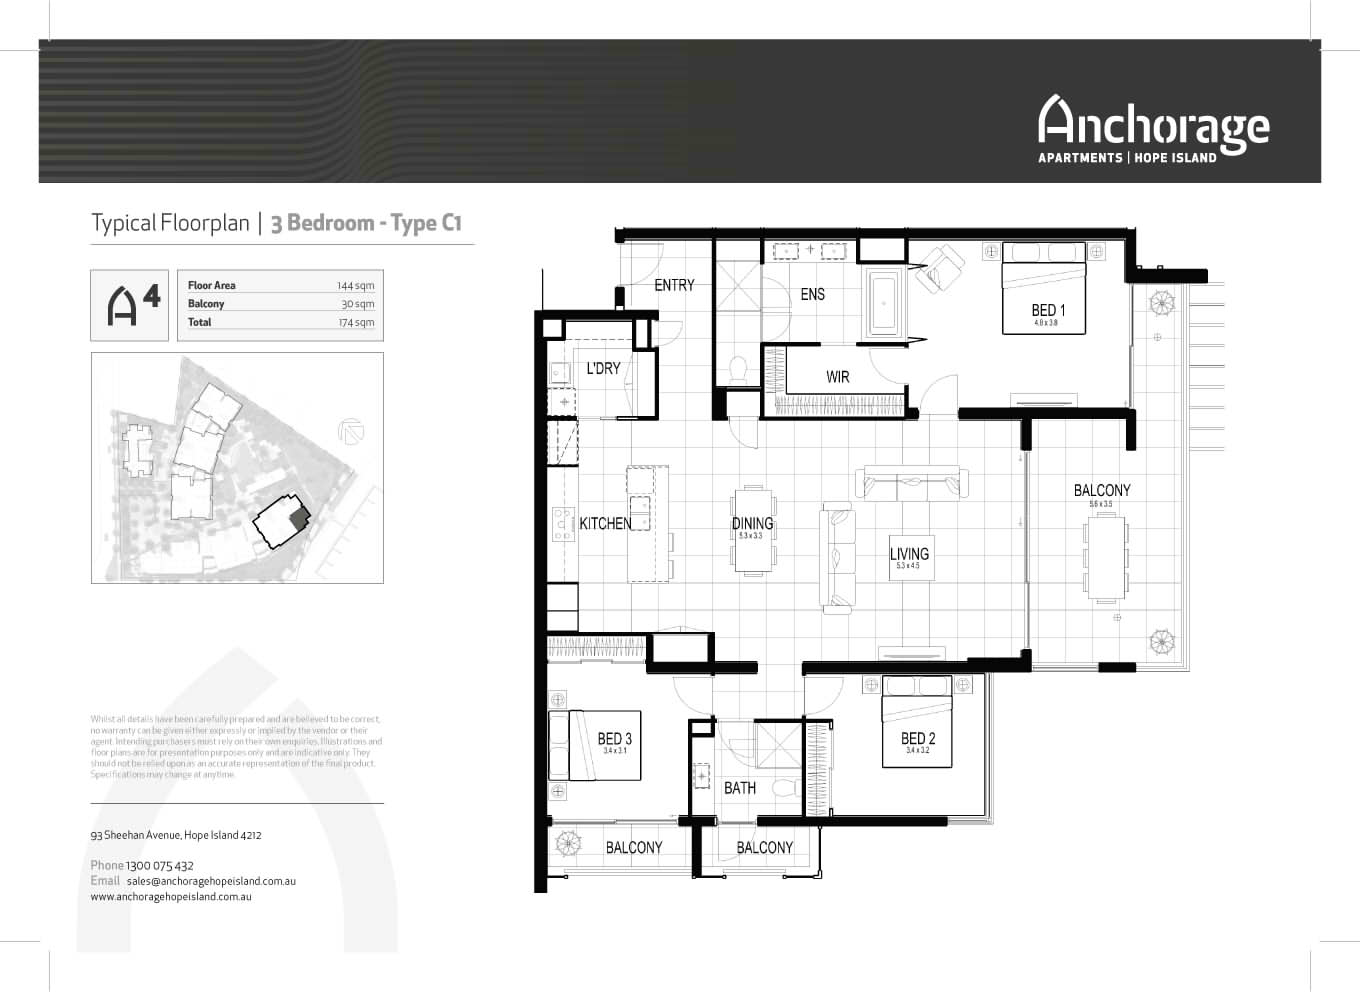 SNEAK PEAK FLOOR PLAN OF THE HARBOUR RESIDENCES